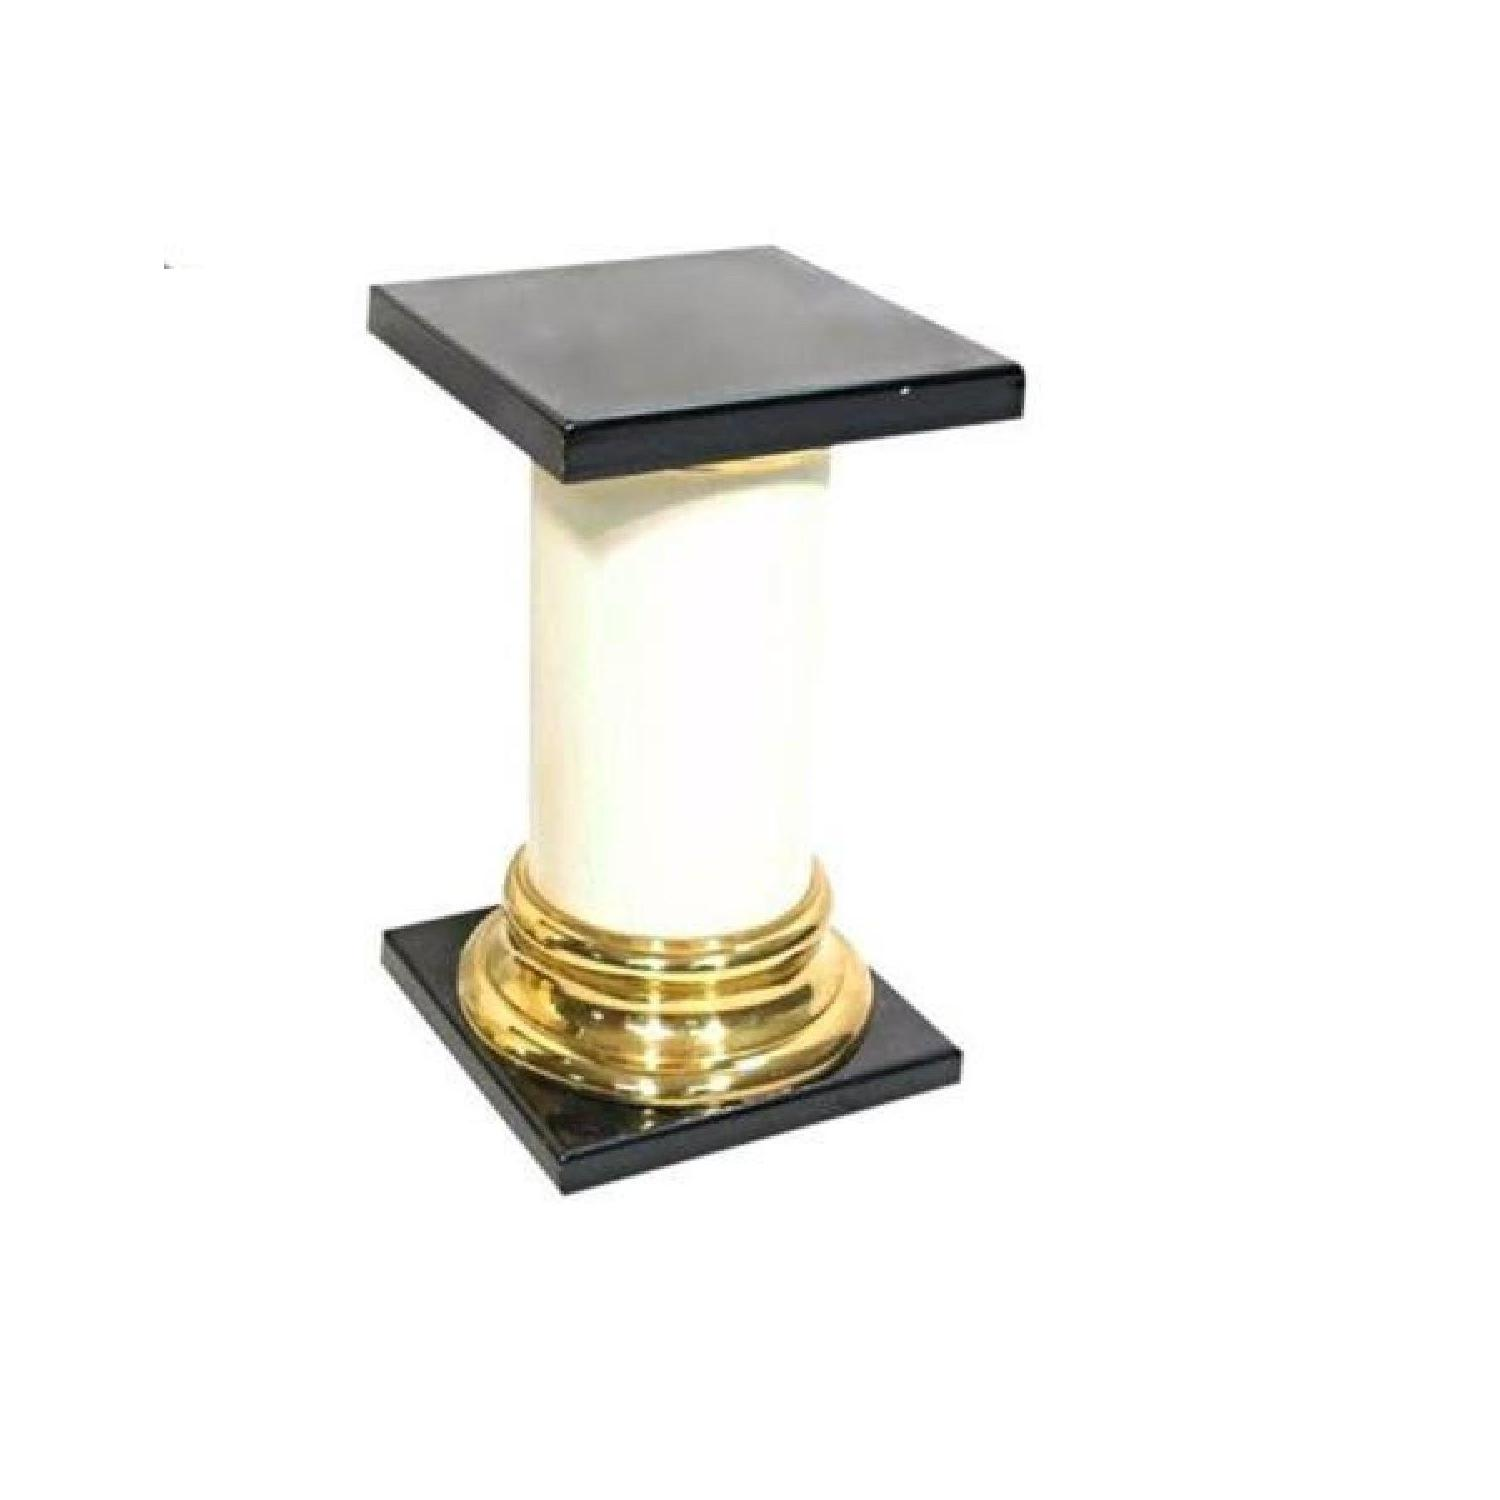 Mastercraft Lacquer Brass Pedestal Table in Black & White